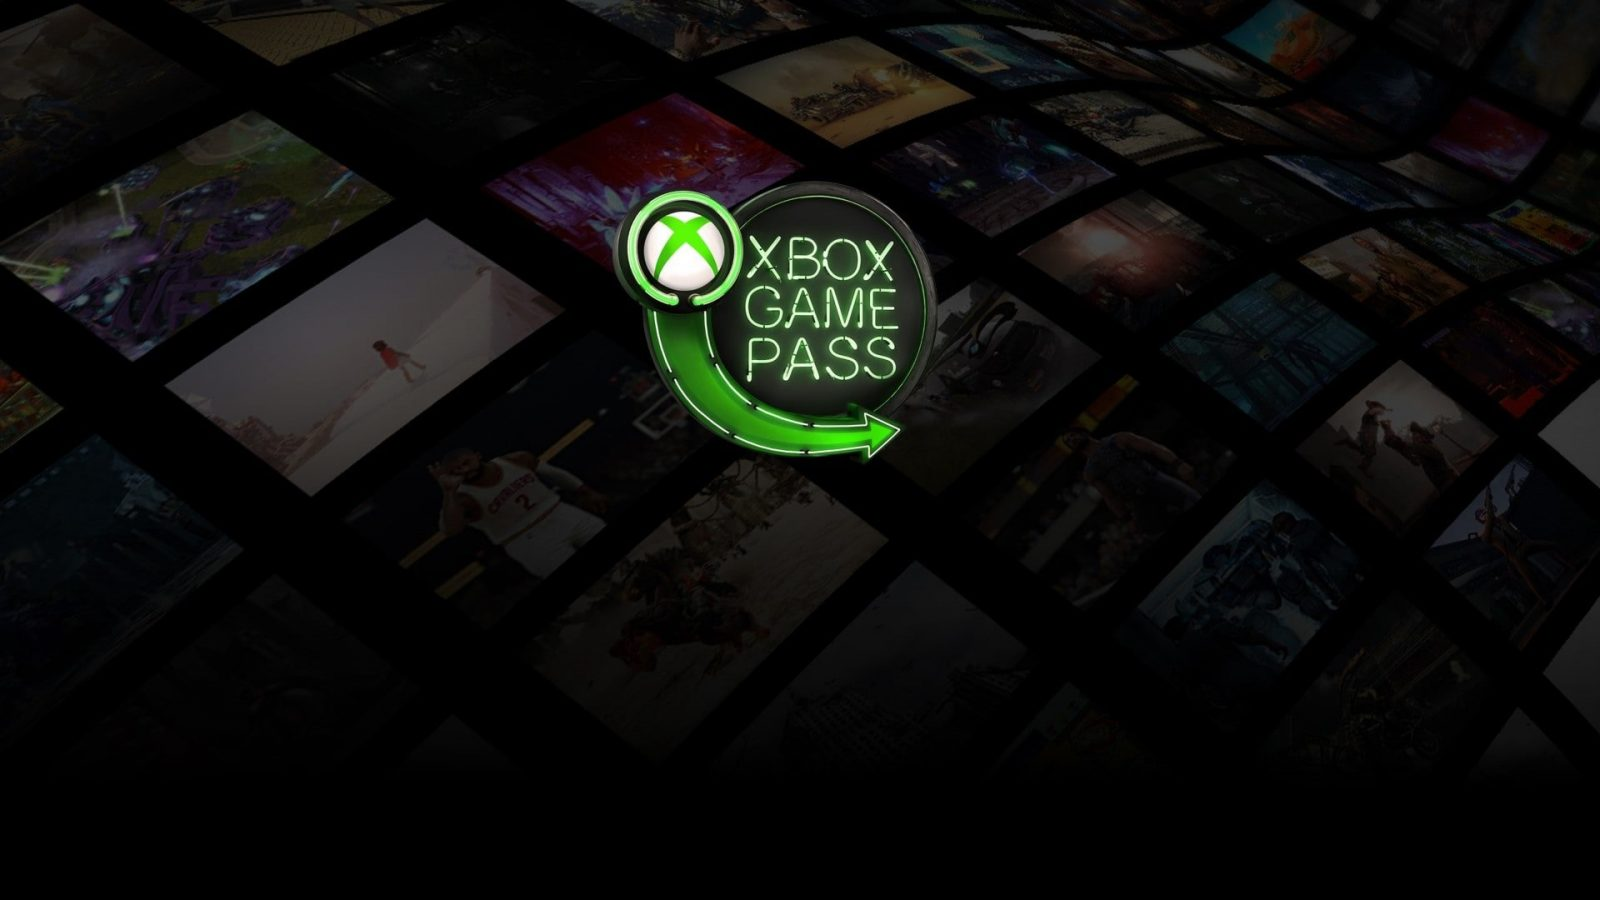 Devil May Cry 5 Among Newest Additions to Xbox Game Pass